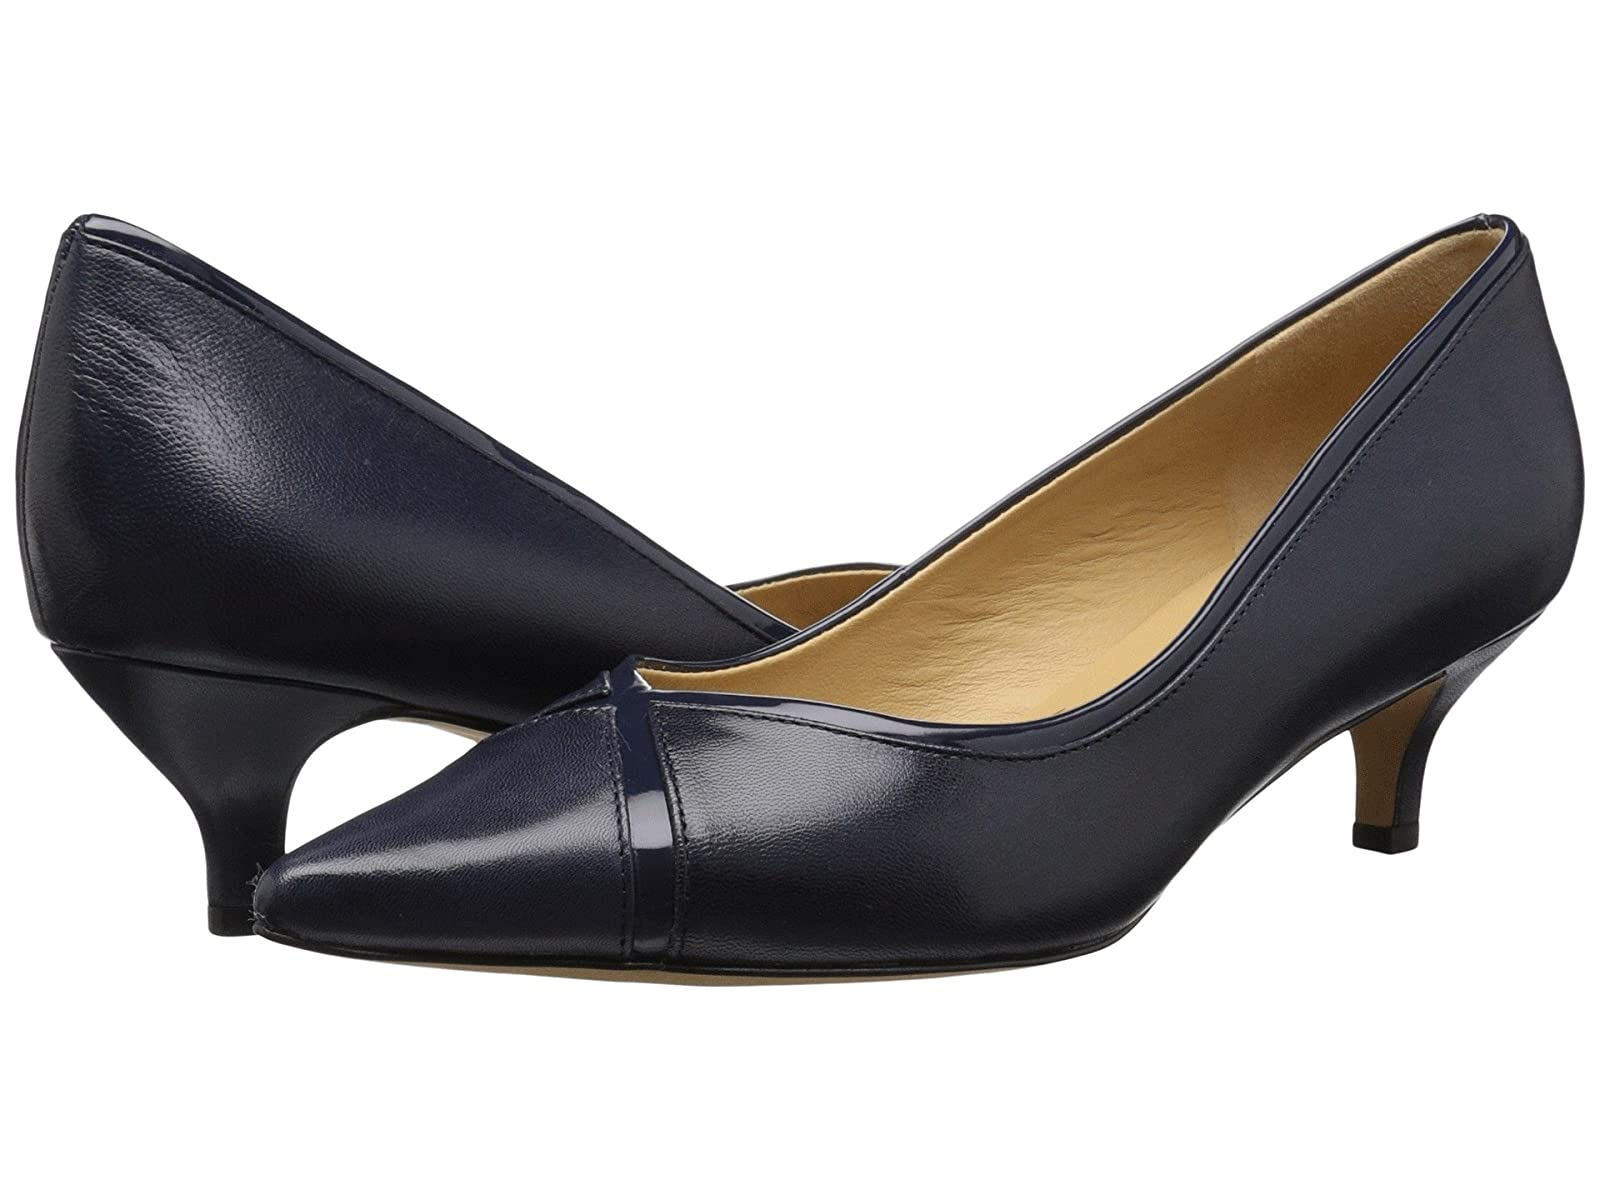 Trotters KelseyCheap and distinctive eye-catching shoes